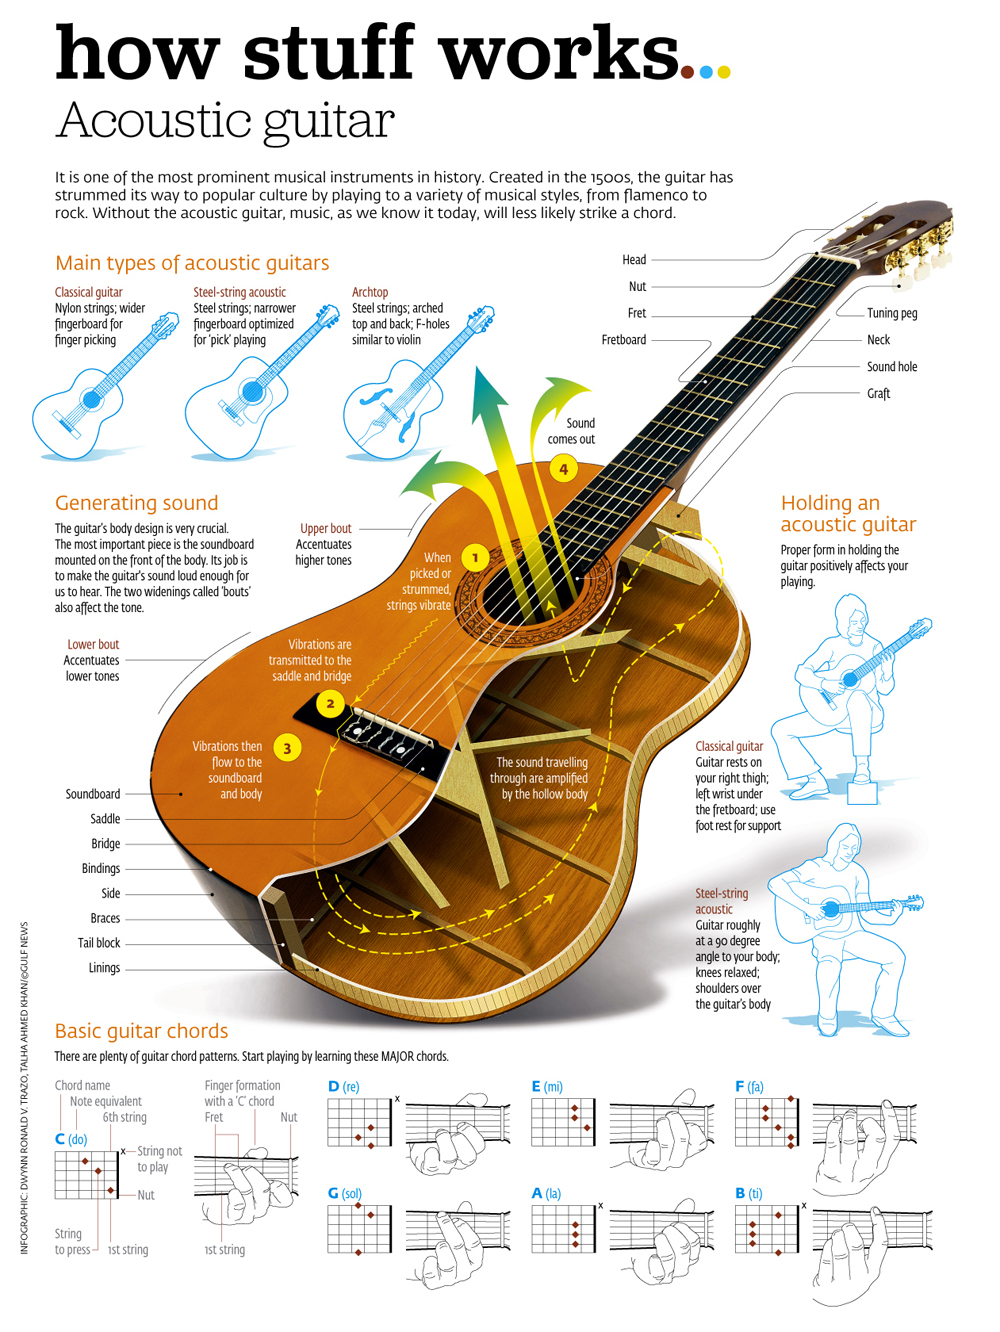 infographic how stuff works the acoustic guitar michael sandberg 39 s data visualization blog. Black Bedroom Furniture Sets. Home Design Ideas